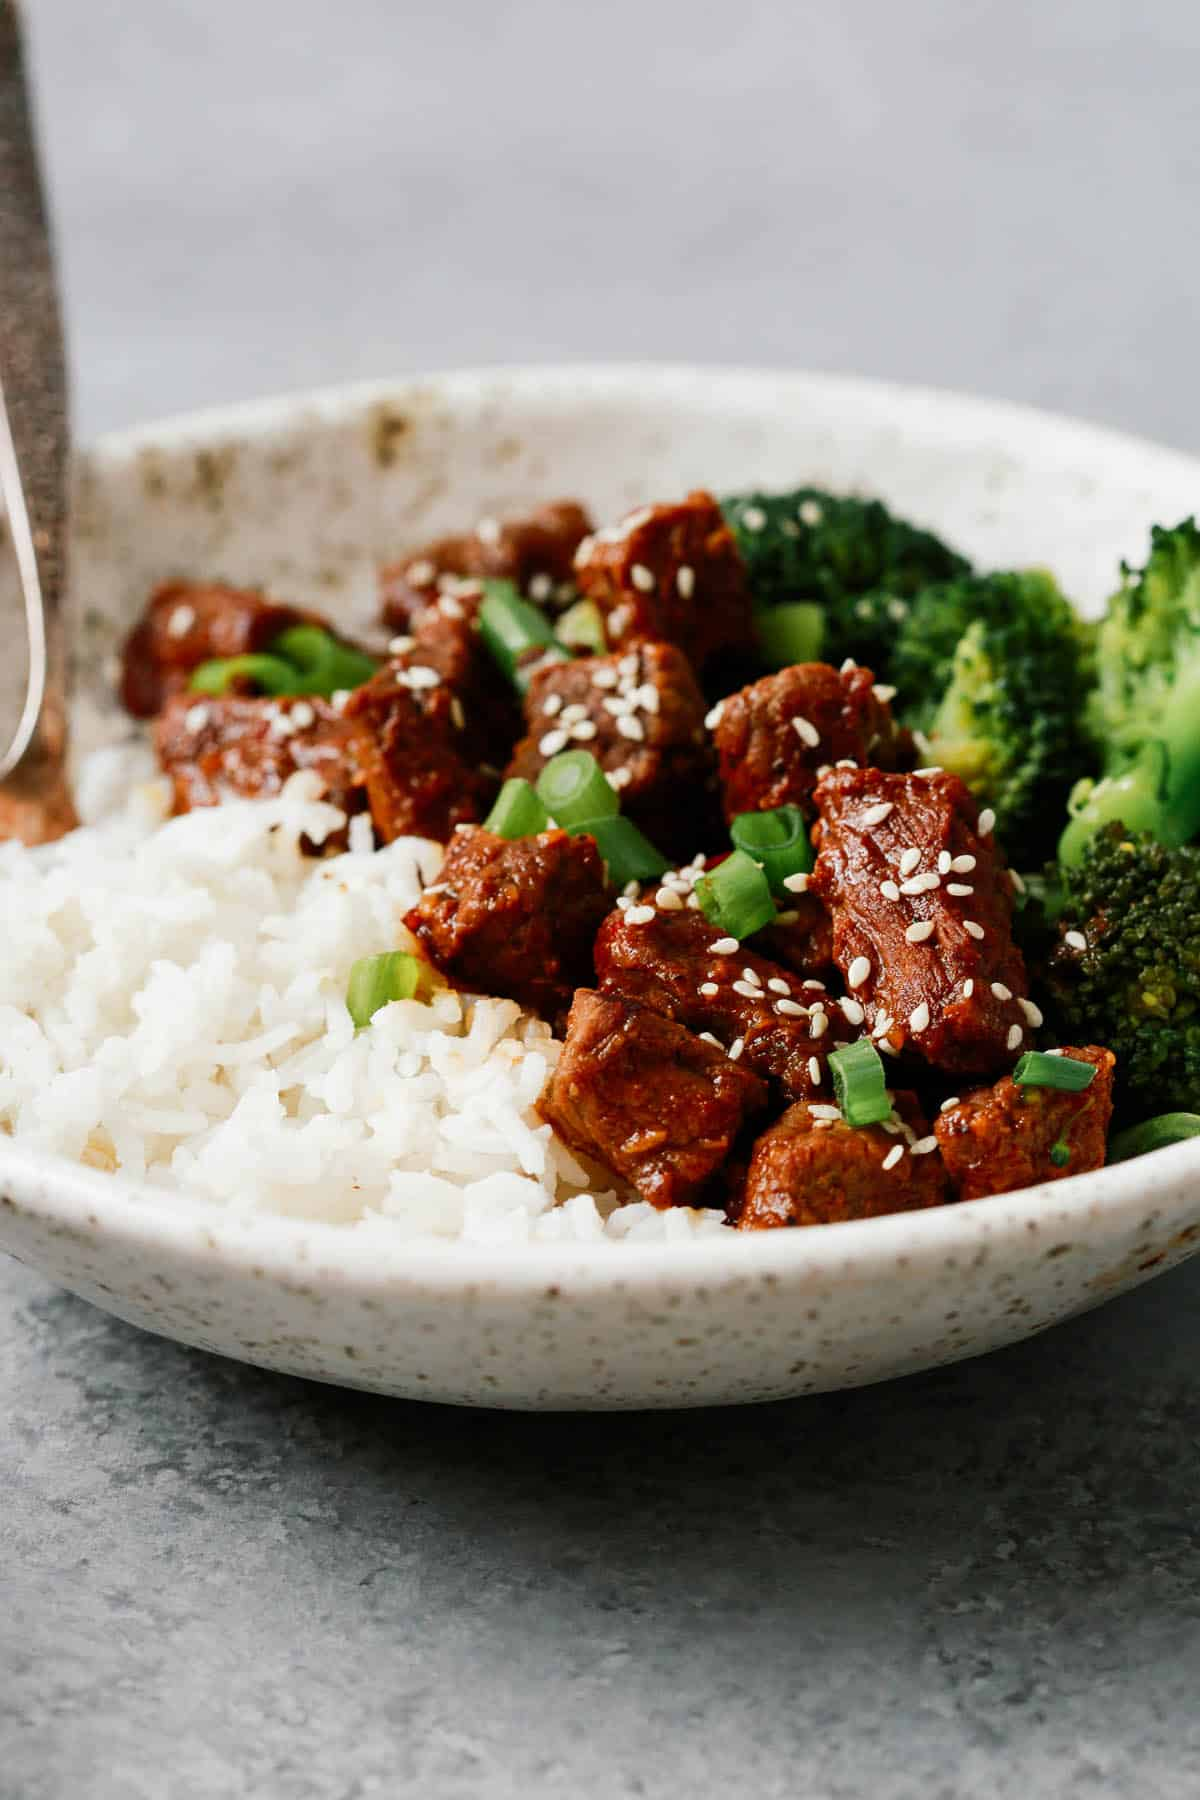 plate of Asian spiced beef, fluffy white rice, and side of steamed broccoli